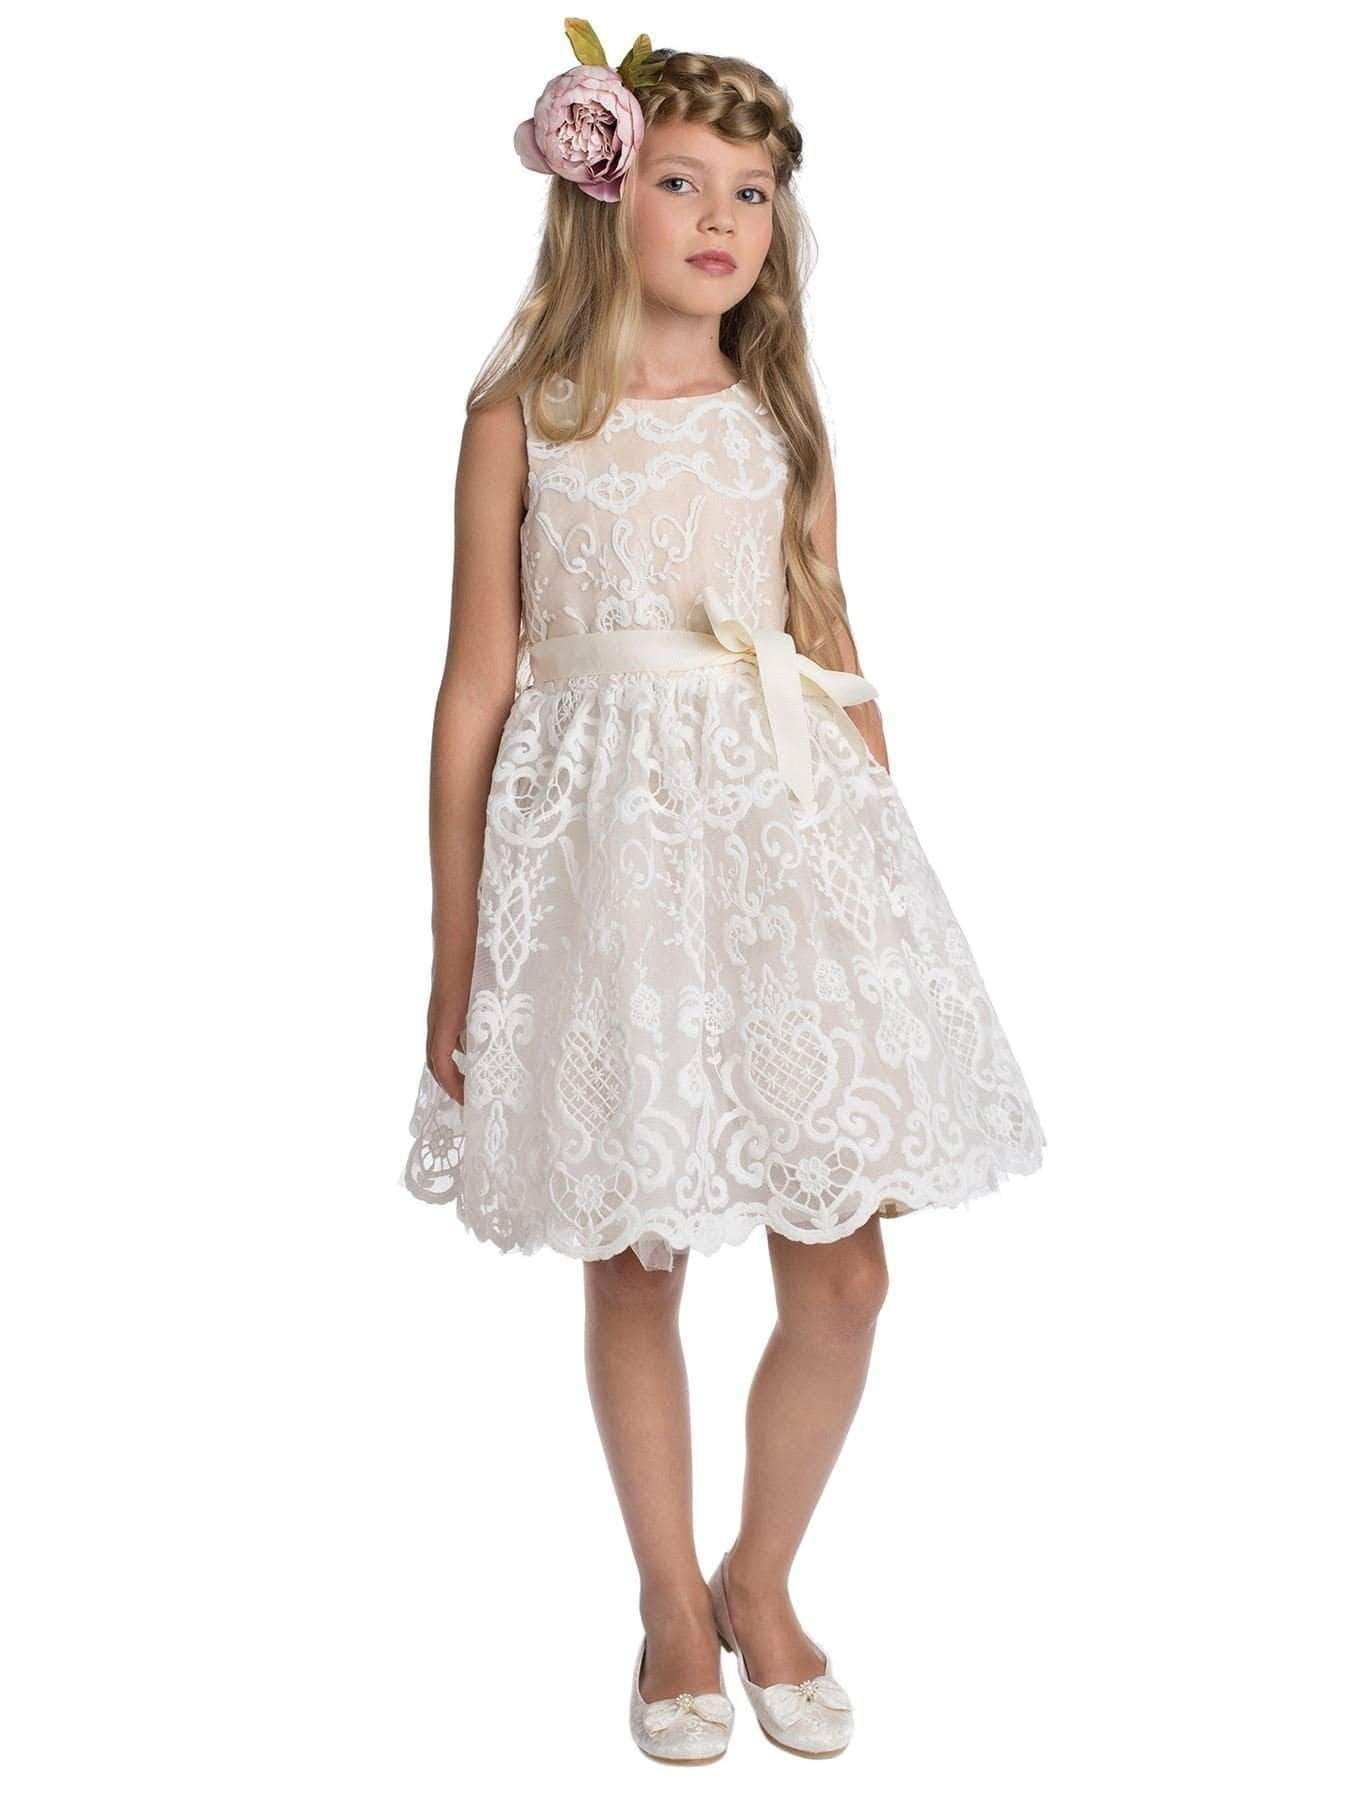 Amazon Paisley of London - Vestido - para niña Beige champán 2-3 Años